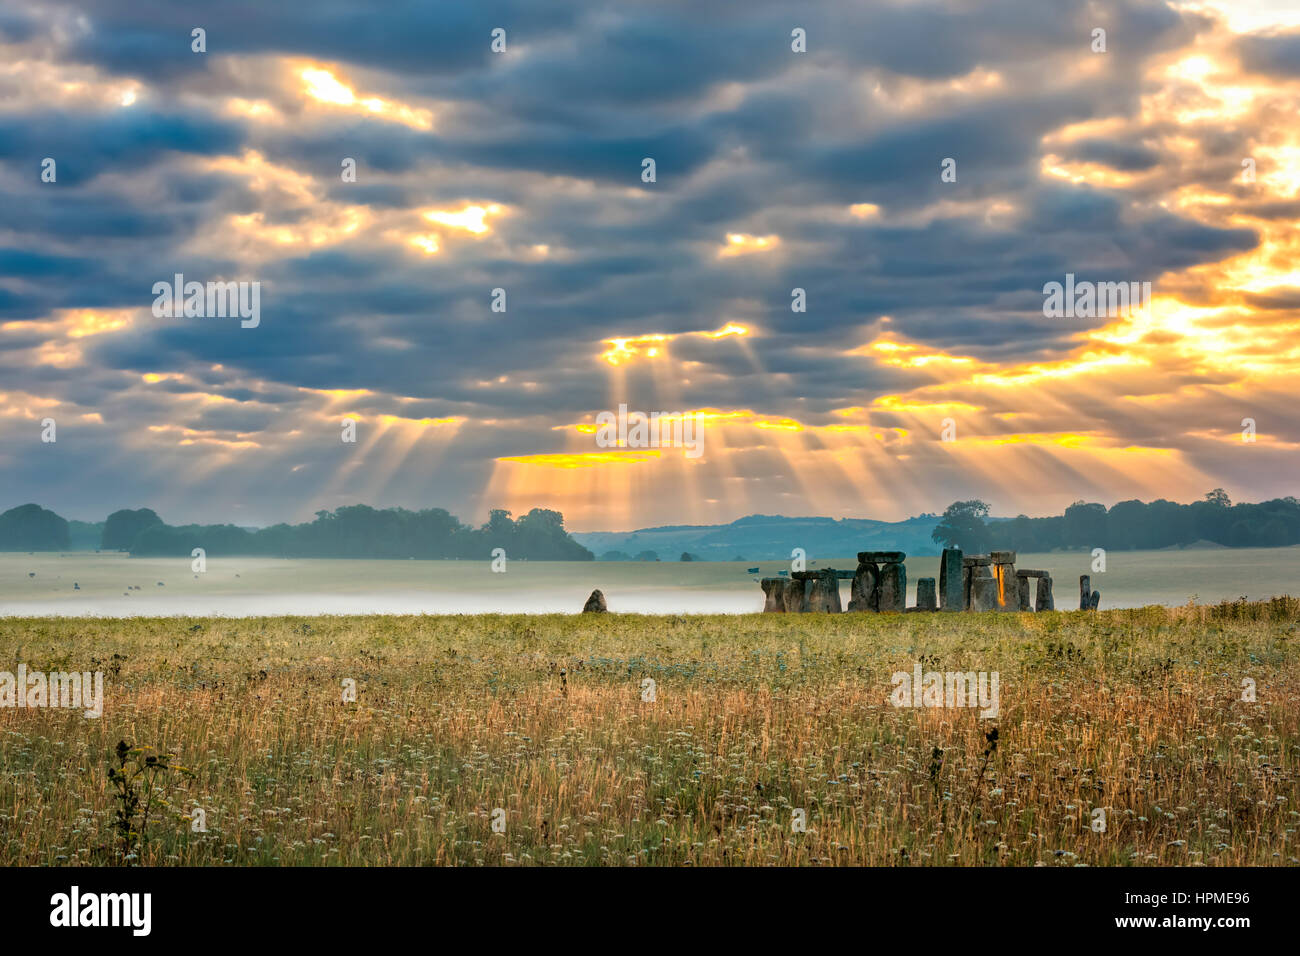 Amesbury, Wiltshire, United Kingdom - August 14, 2016: Cloudy sunrise over Stonehenge - prehistoric megalith monument - Stock Image